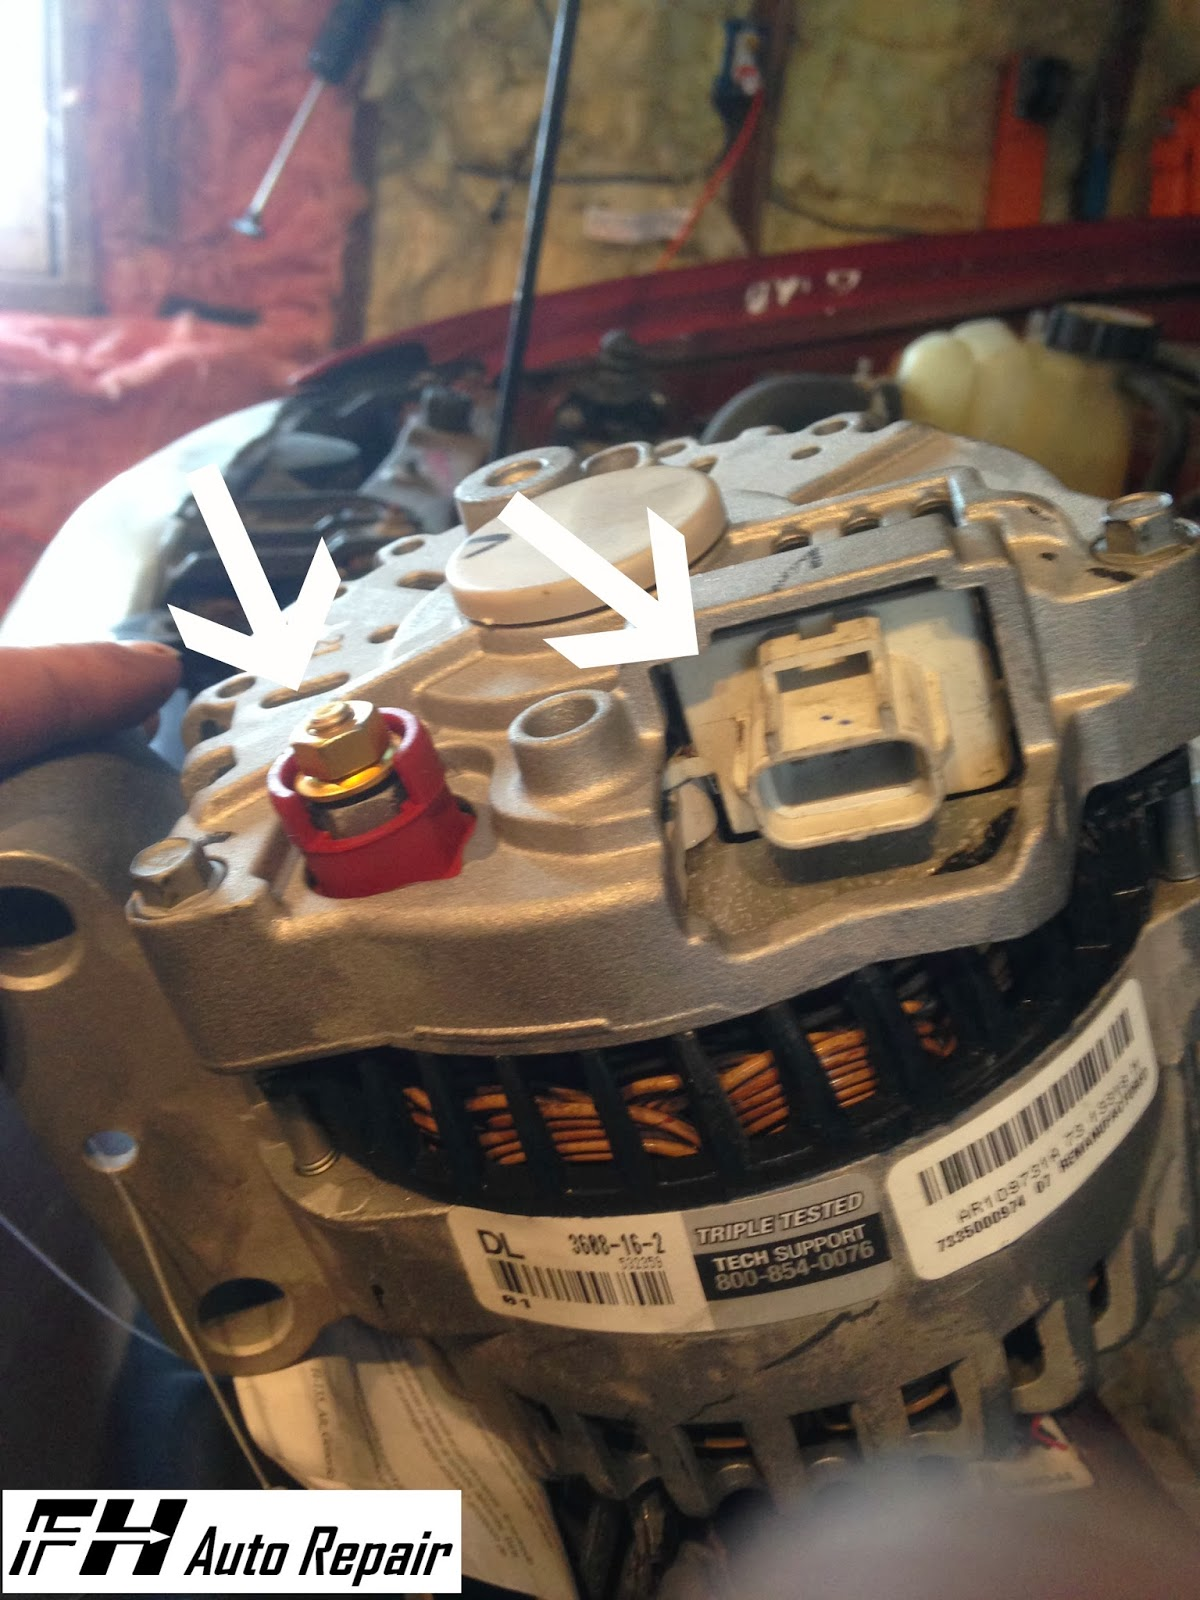 2002 Ford Escape Alternator Wiring Diagram Grief Cycle Wheel 2001 Repair Cost